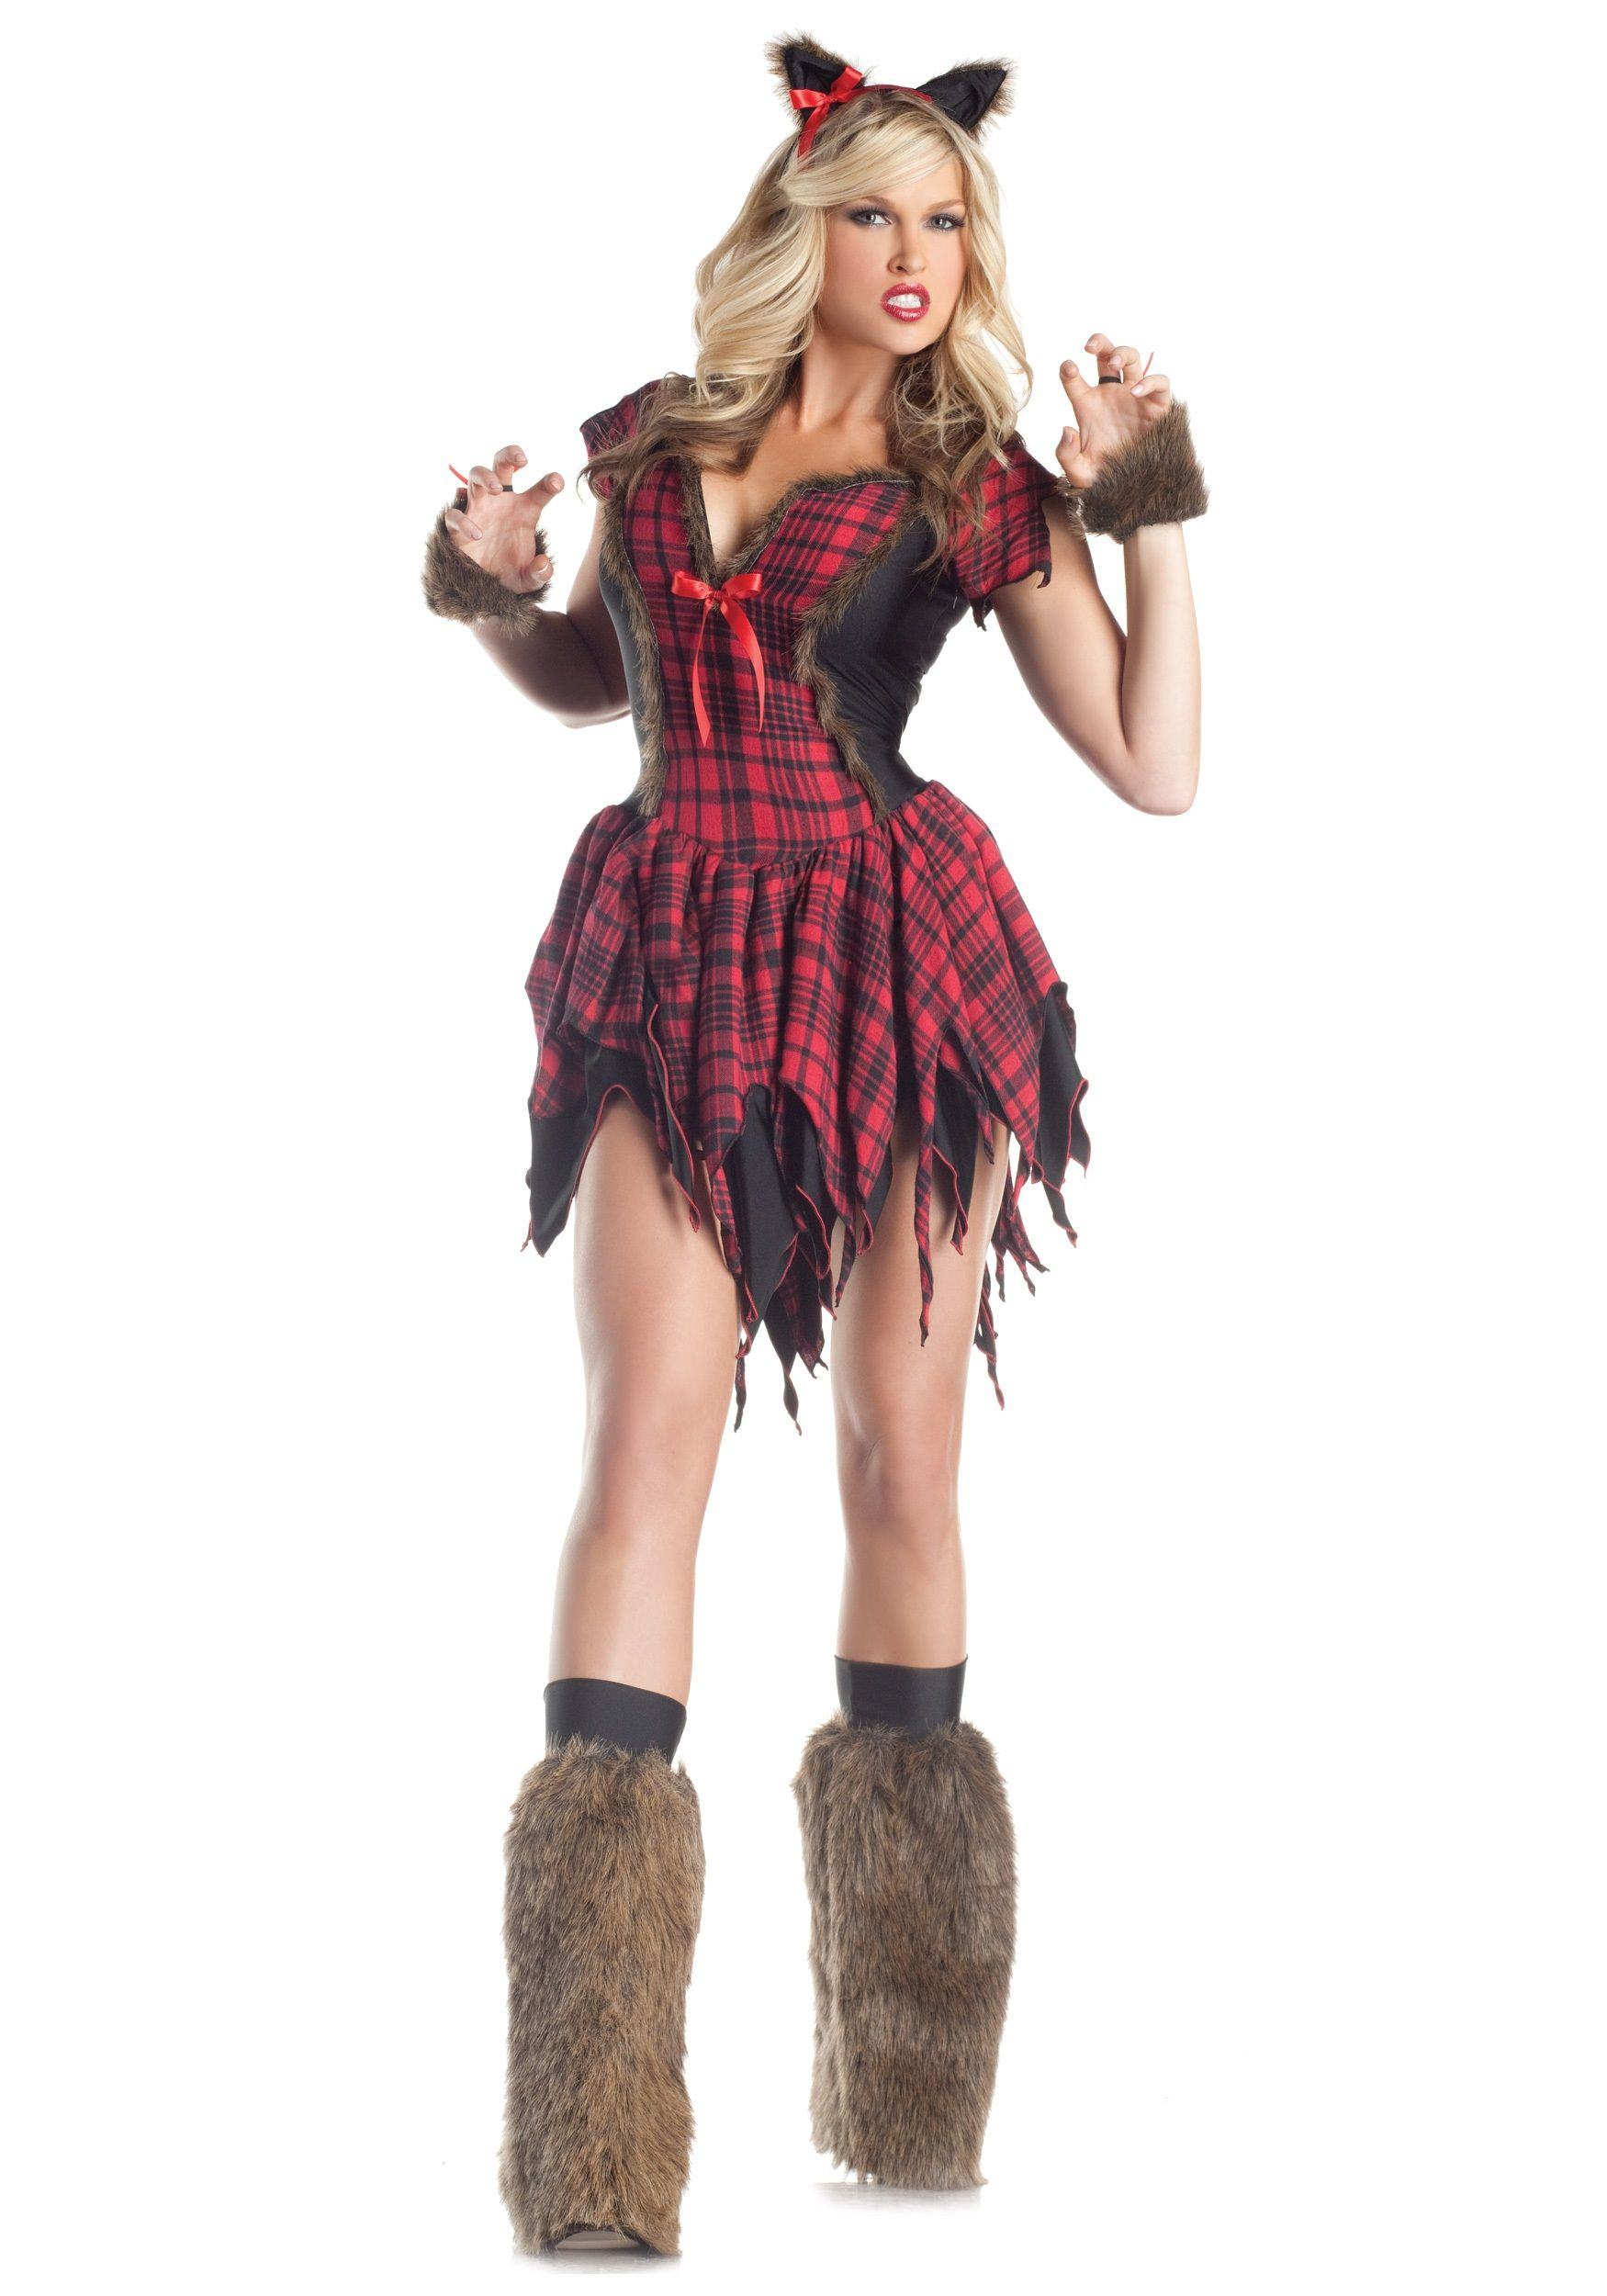 sexy costumes | Home Adult Costume Ideas Scary Costumes Werewolf ...